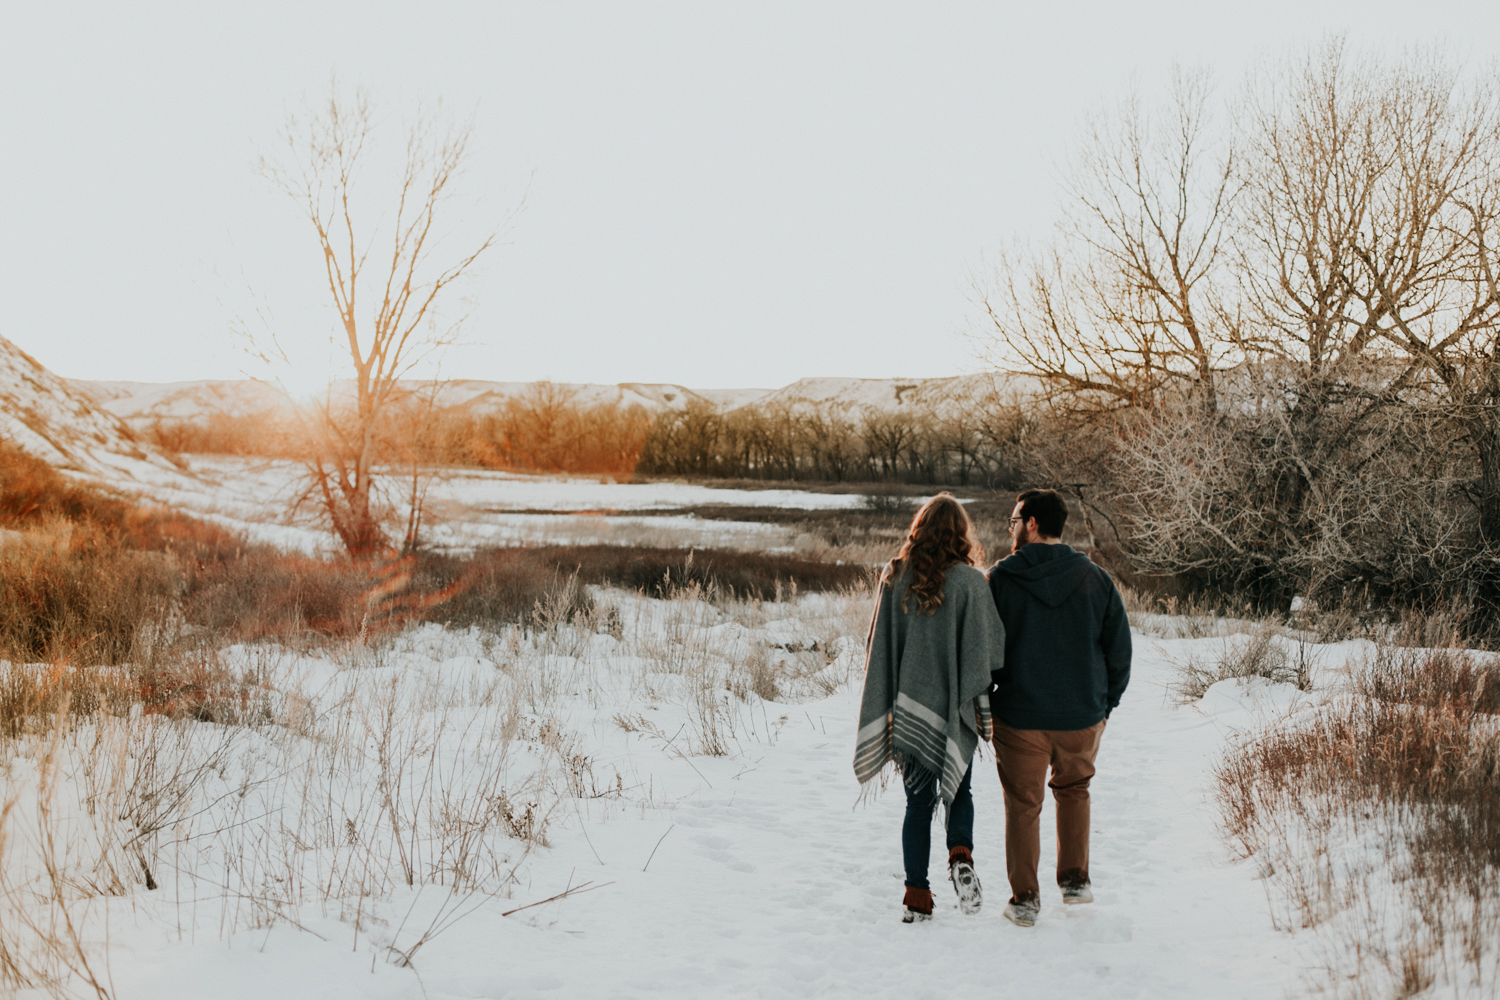 lethbridge-photography-love-and-be-loved-photographer-dan-tynnea-engagement-picture-image-photo-57.jpg